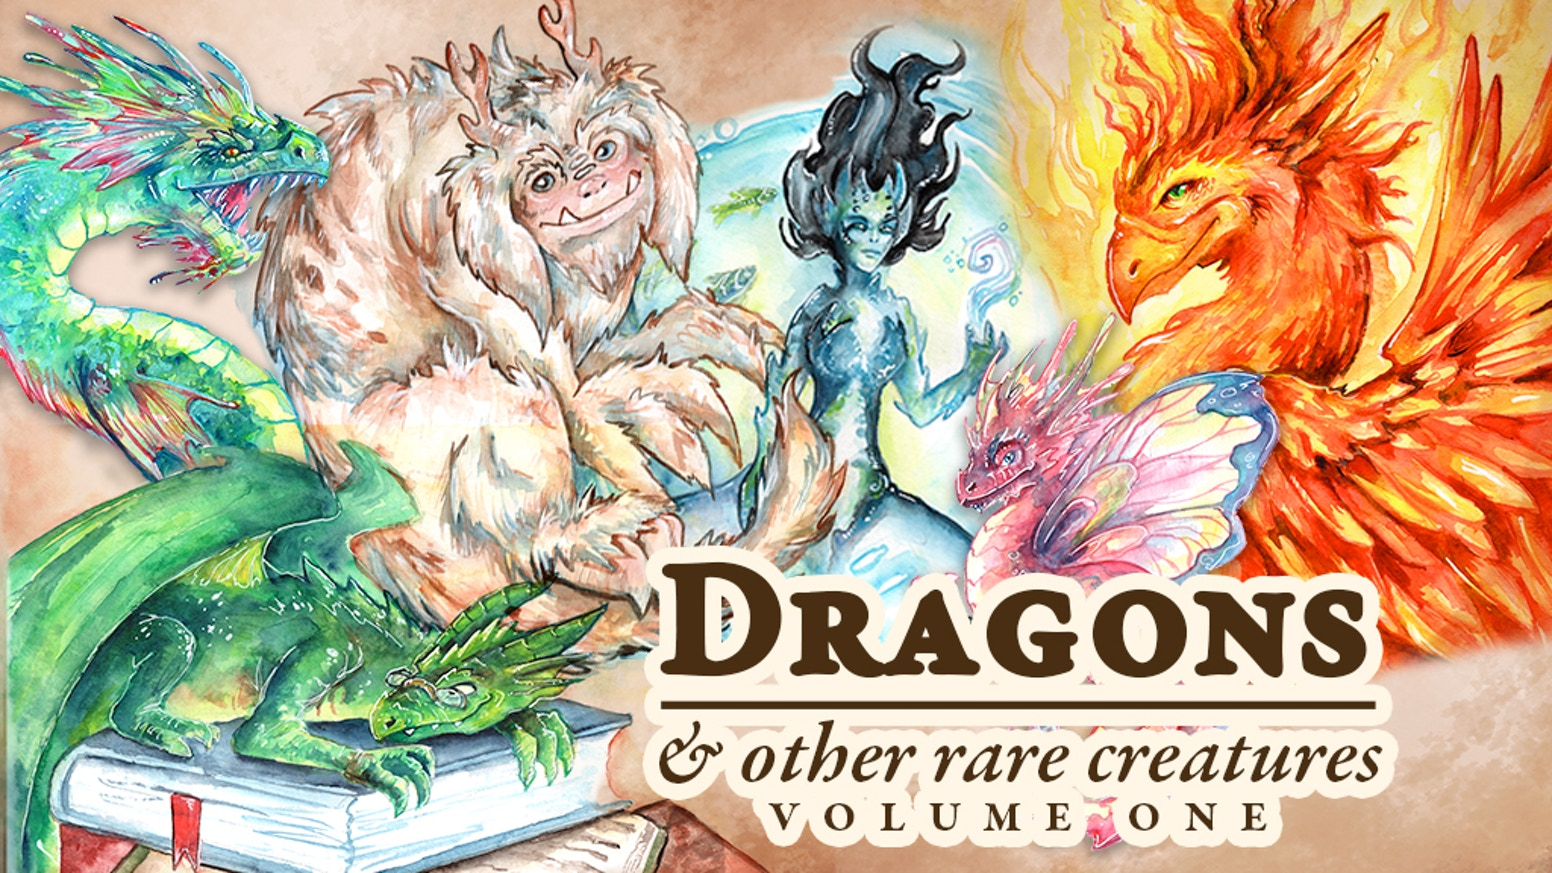 A 300 page field guide to dragons & other amazing creatures! Full color with hundreds of illustrations!